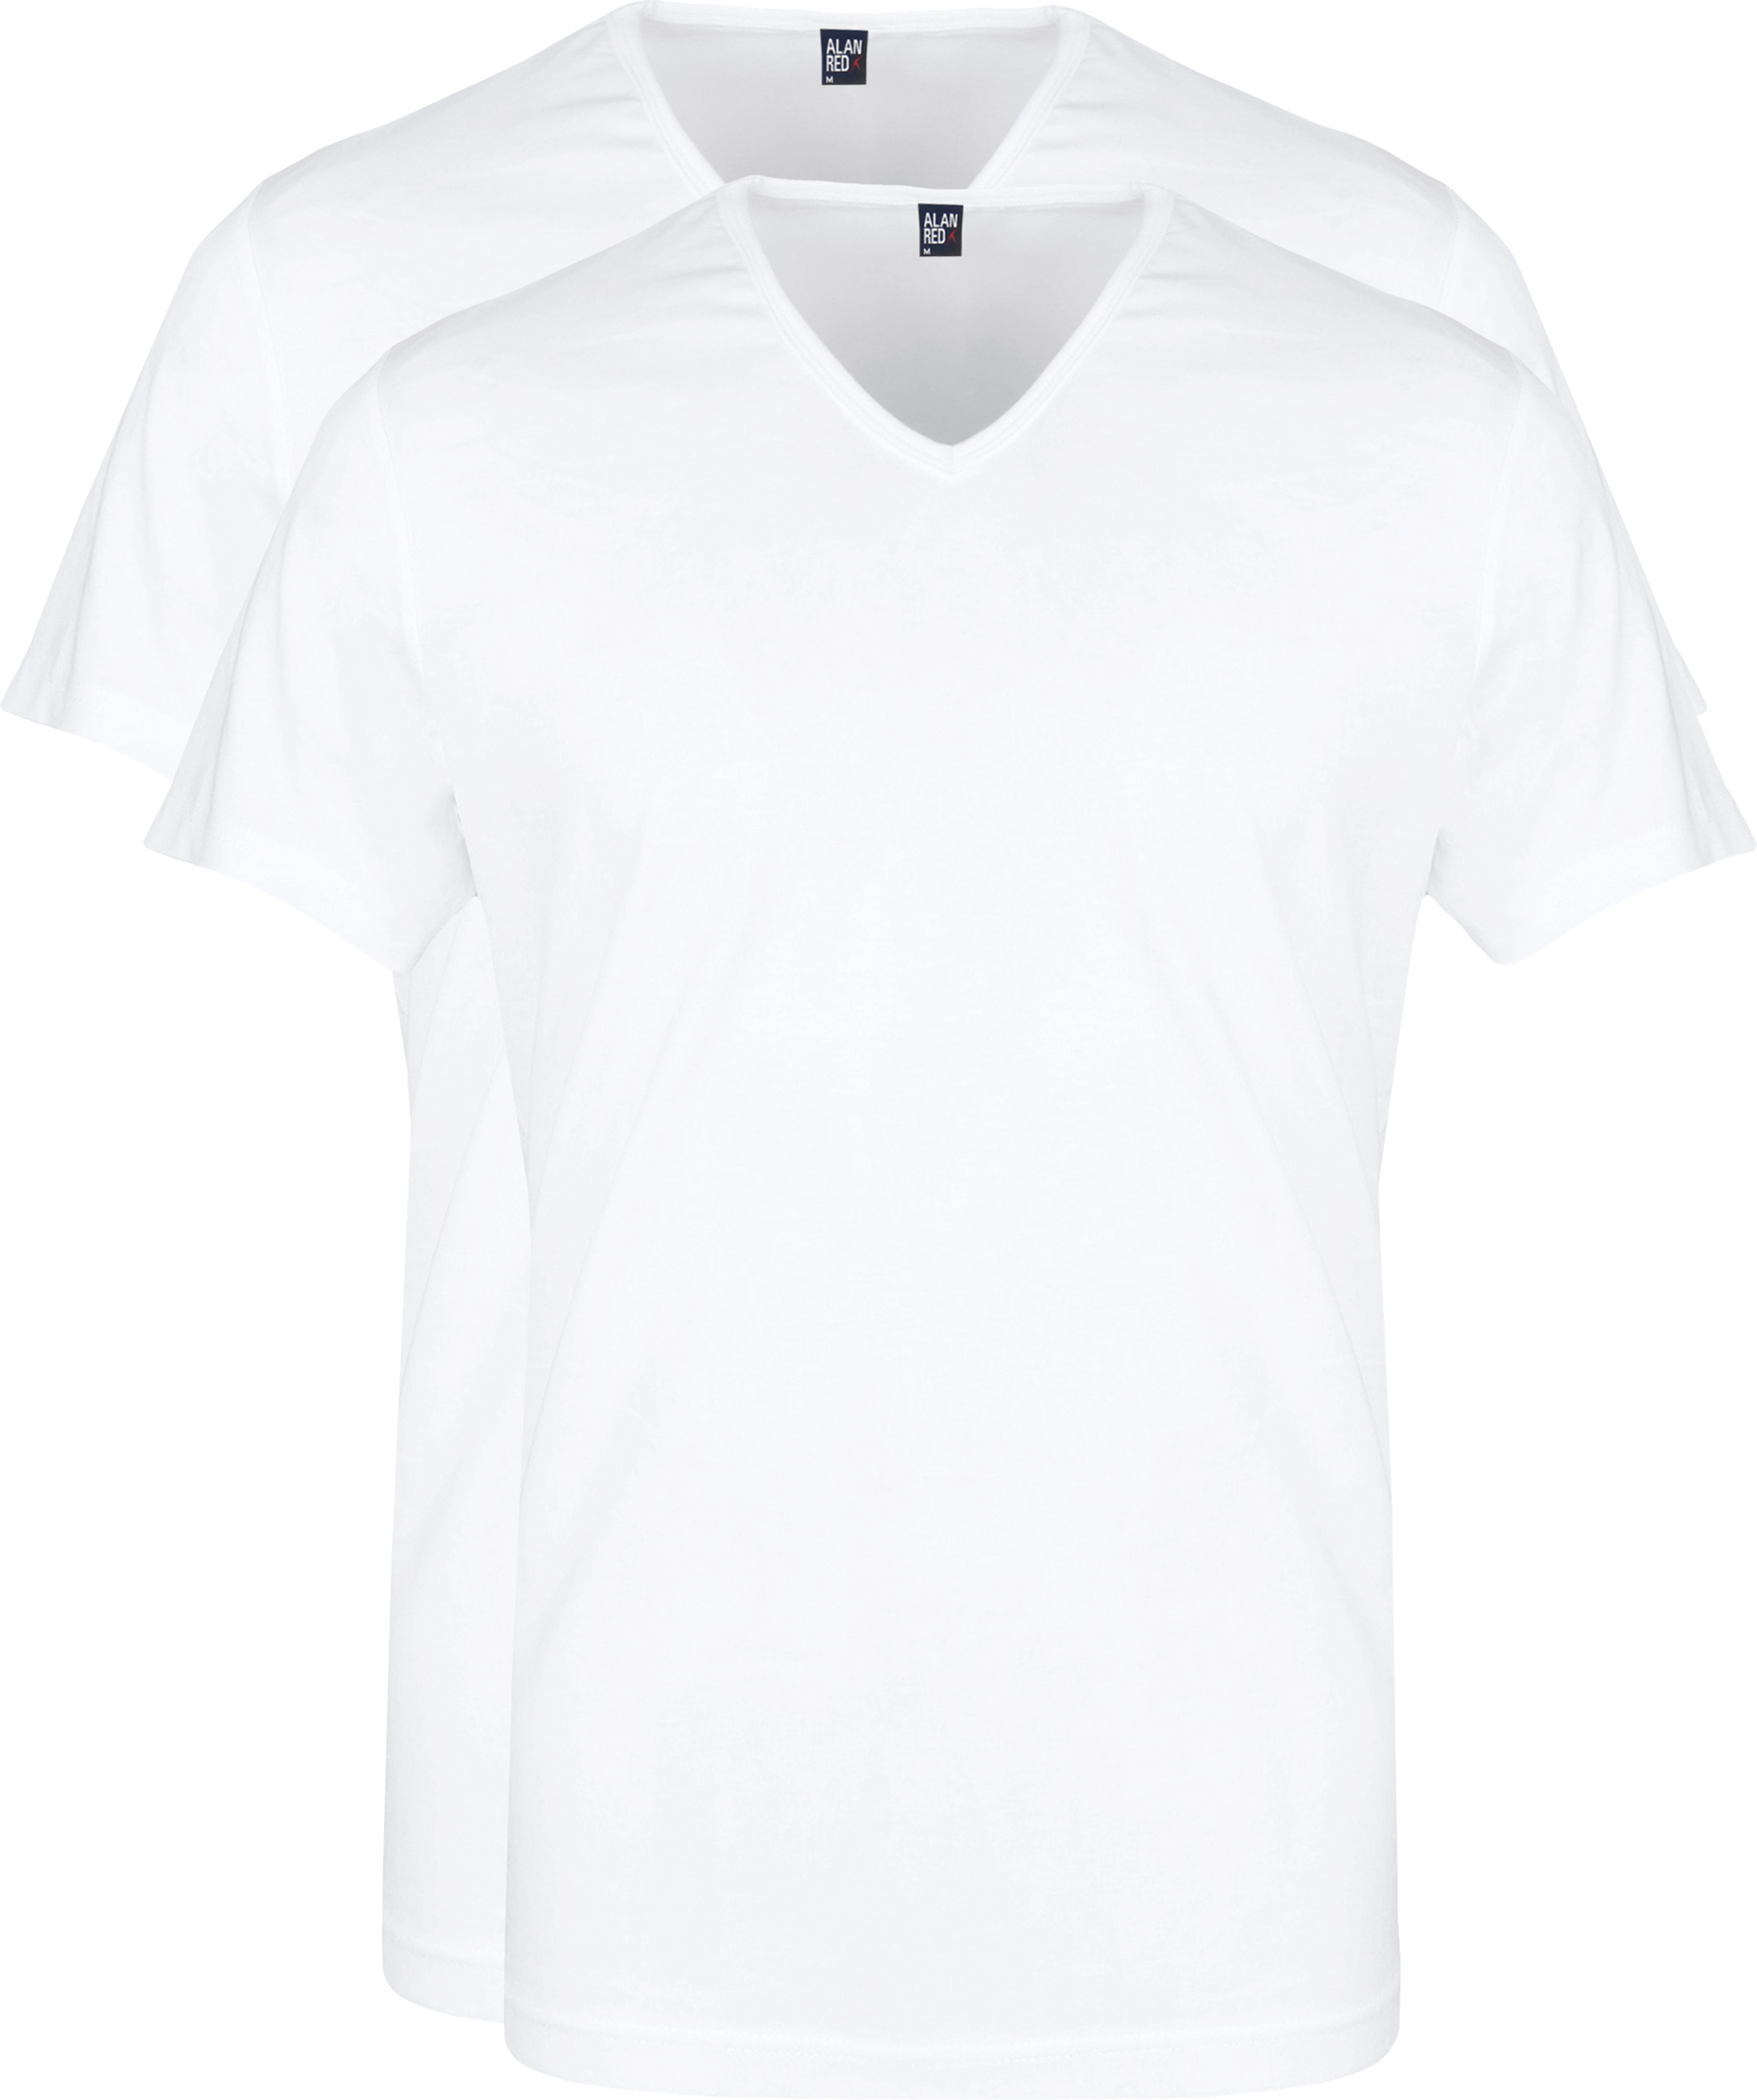 Alan Red Vermont T-Shirt V-Neck White (2Pack) foto 0